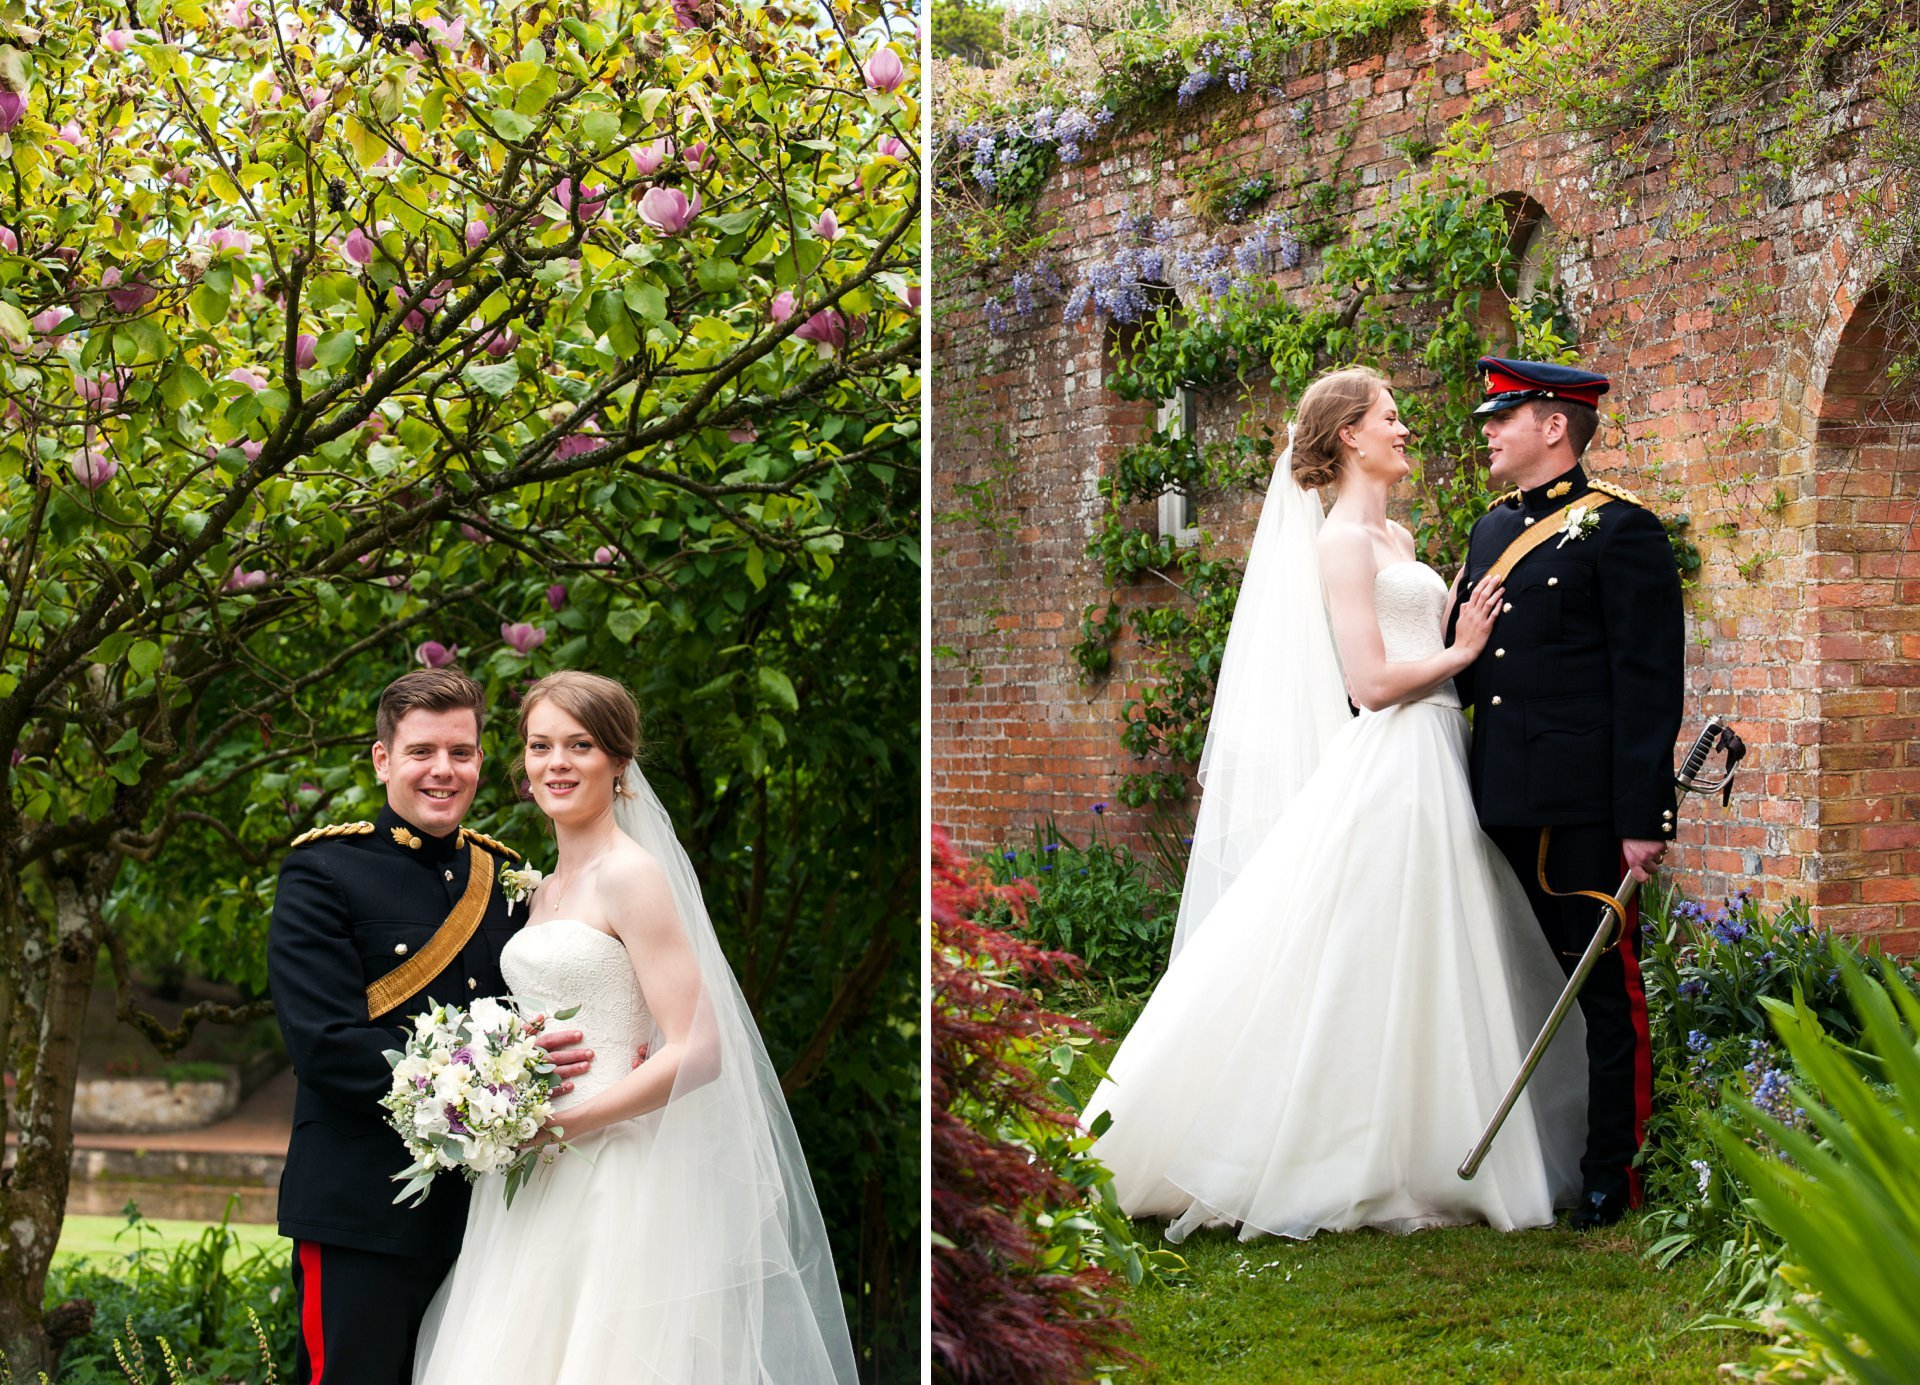 Sam and Jess celebrate their wedding at Starborough Manor in front of the beautiful spring foliage